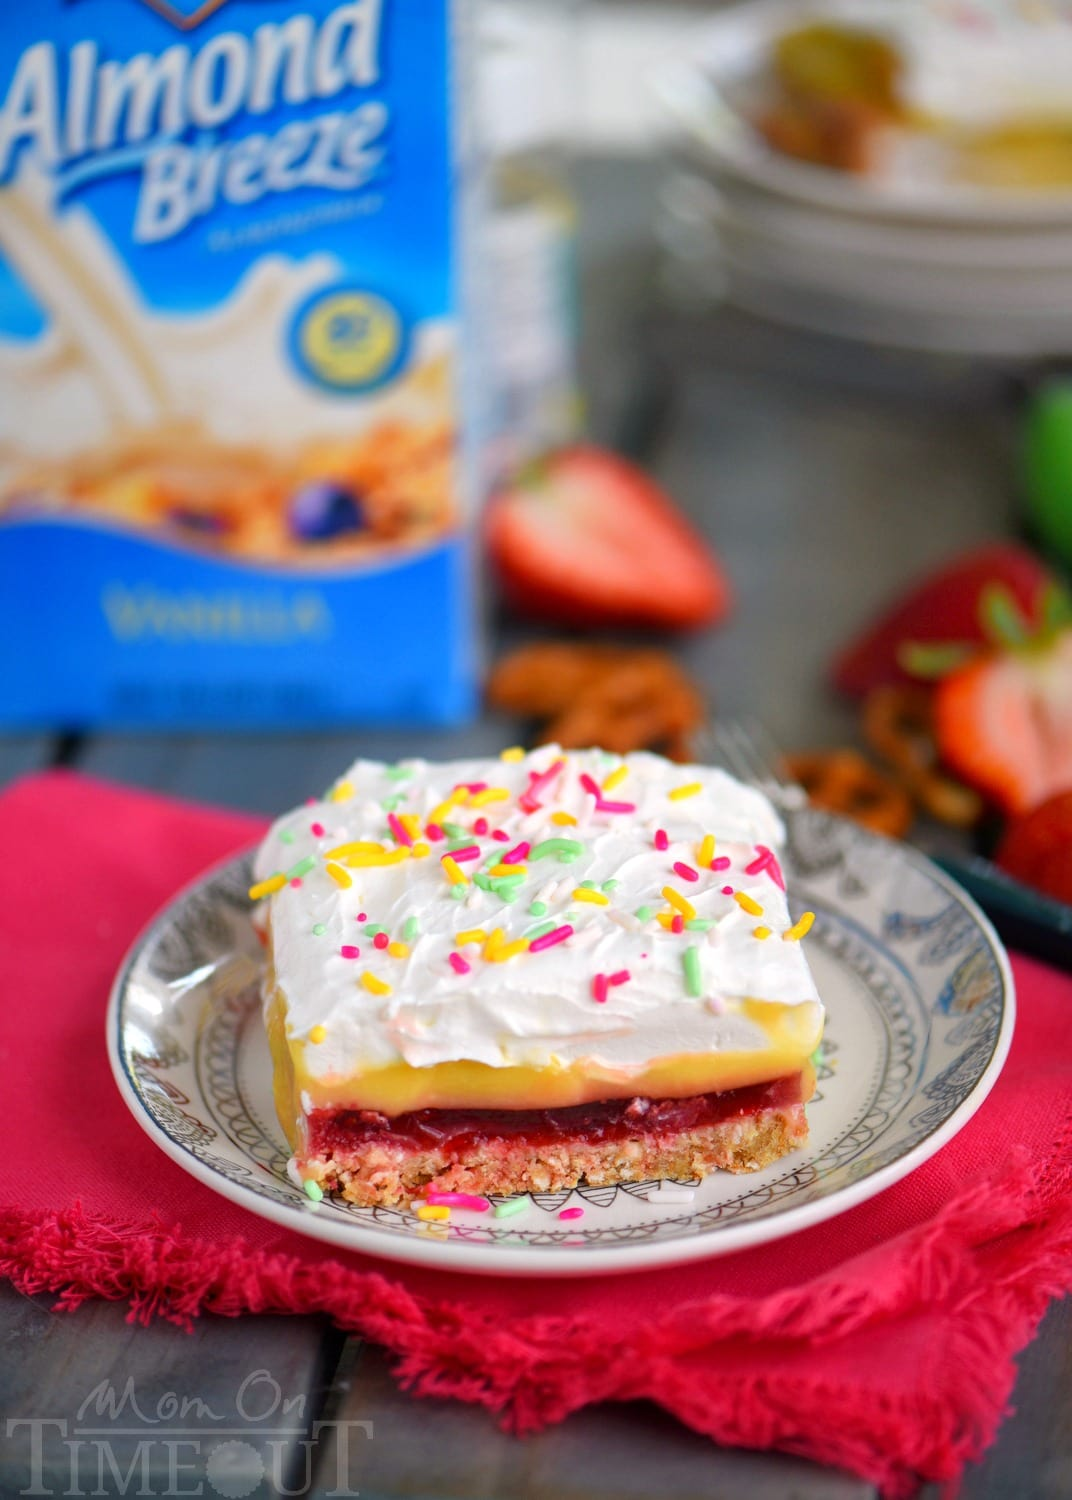 This easy No Bake Strawberry Pretzel Layered Dessert is sure to become a new family favorite! A graham cracker-pretzel crust is topped with a sweet strawberry jell-o layer, rich vanilla pudding and creamy whipped topping! Don't forget the sprinkles!